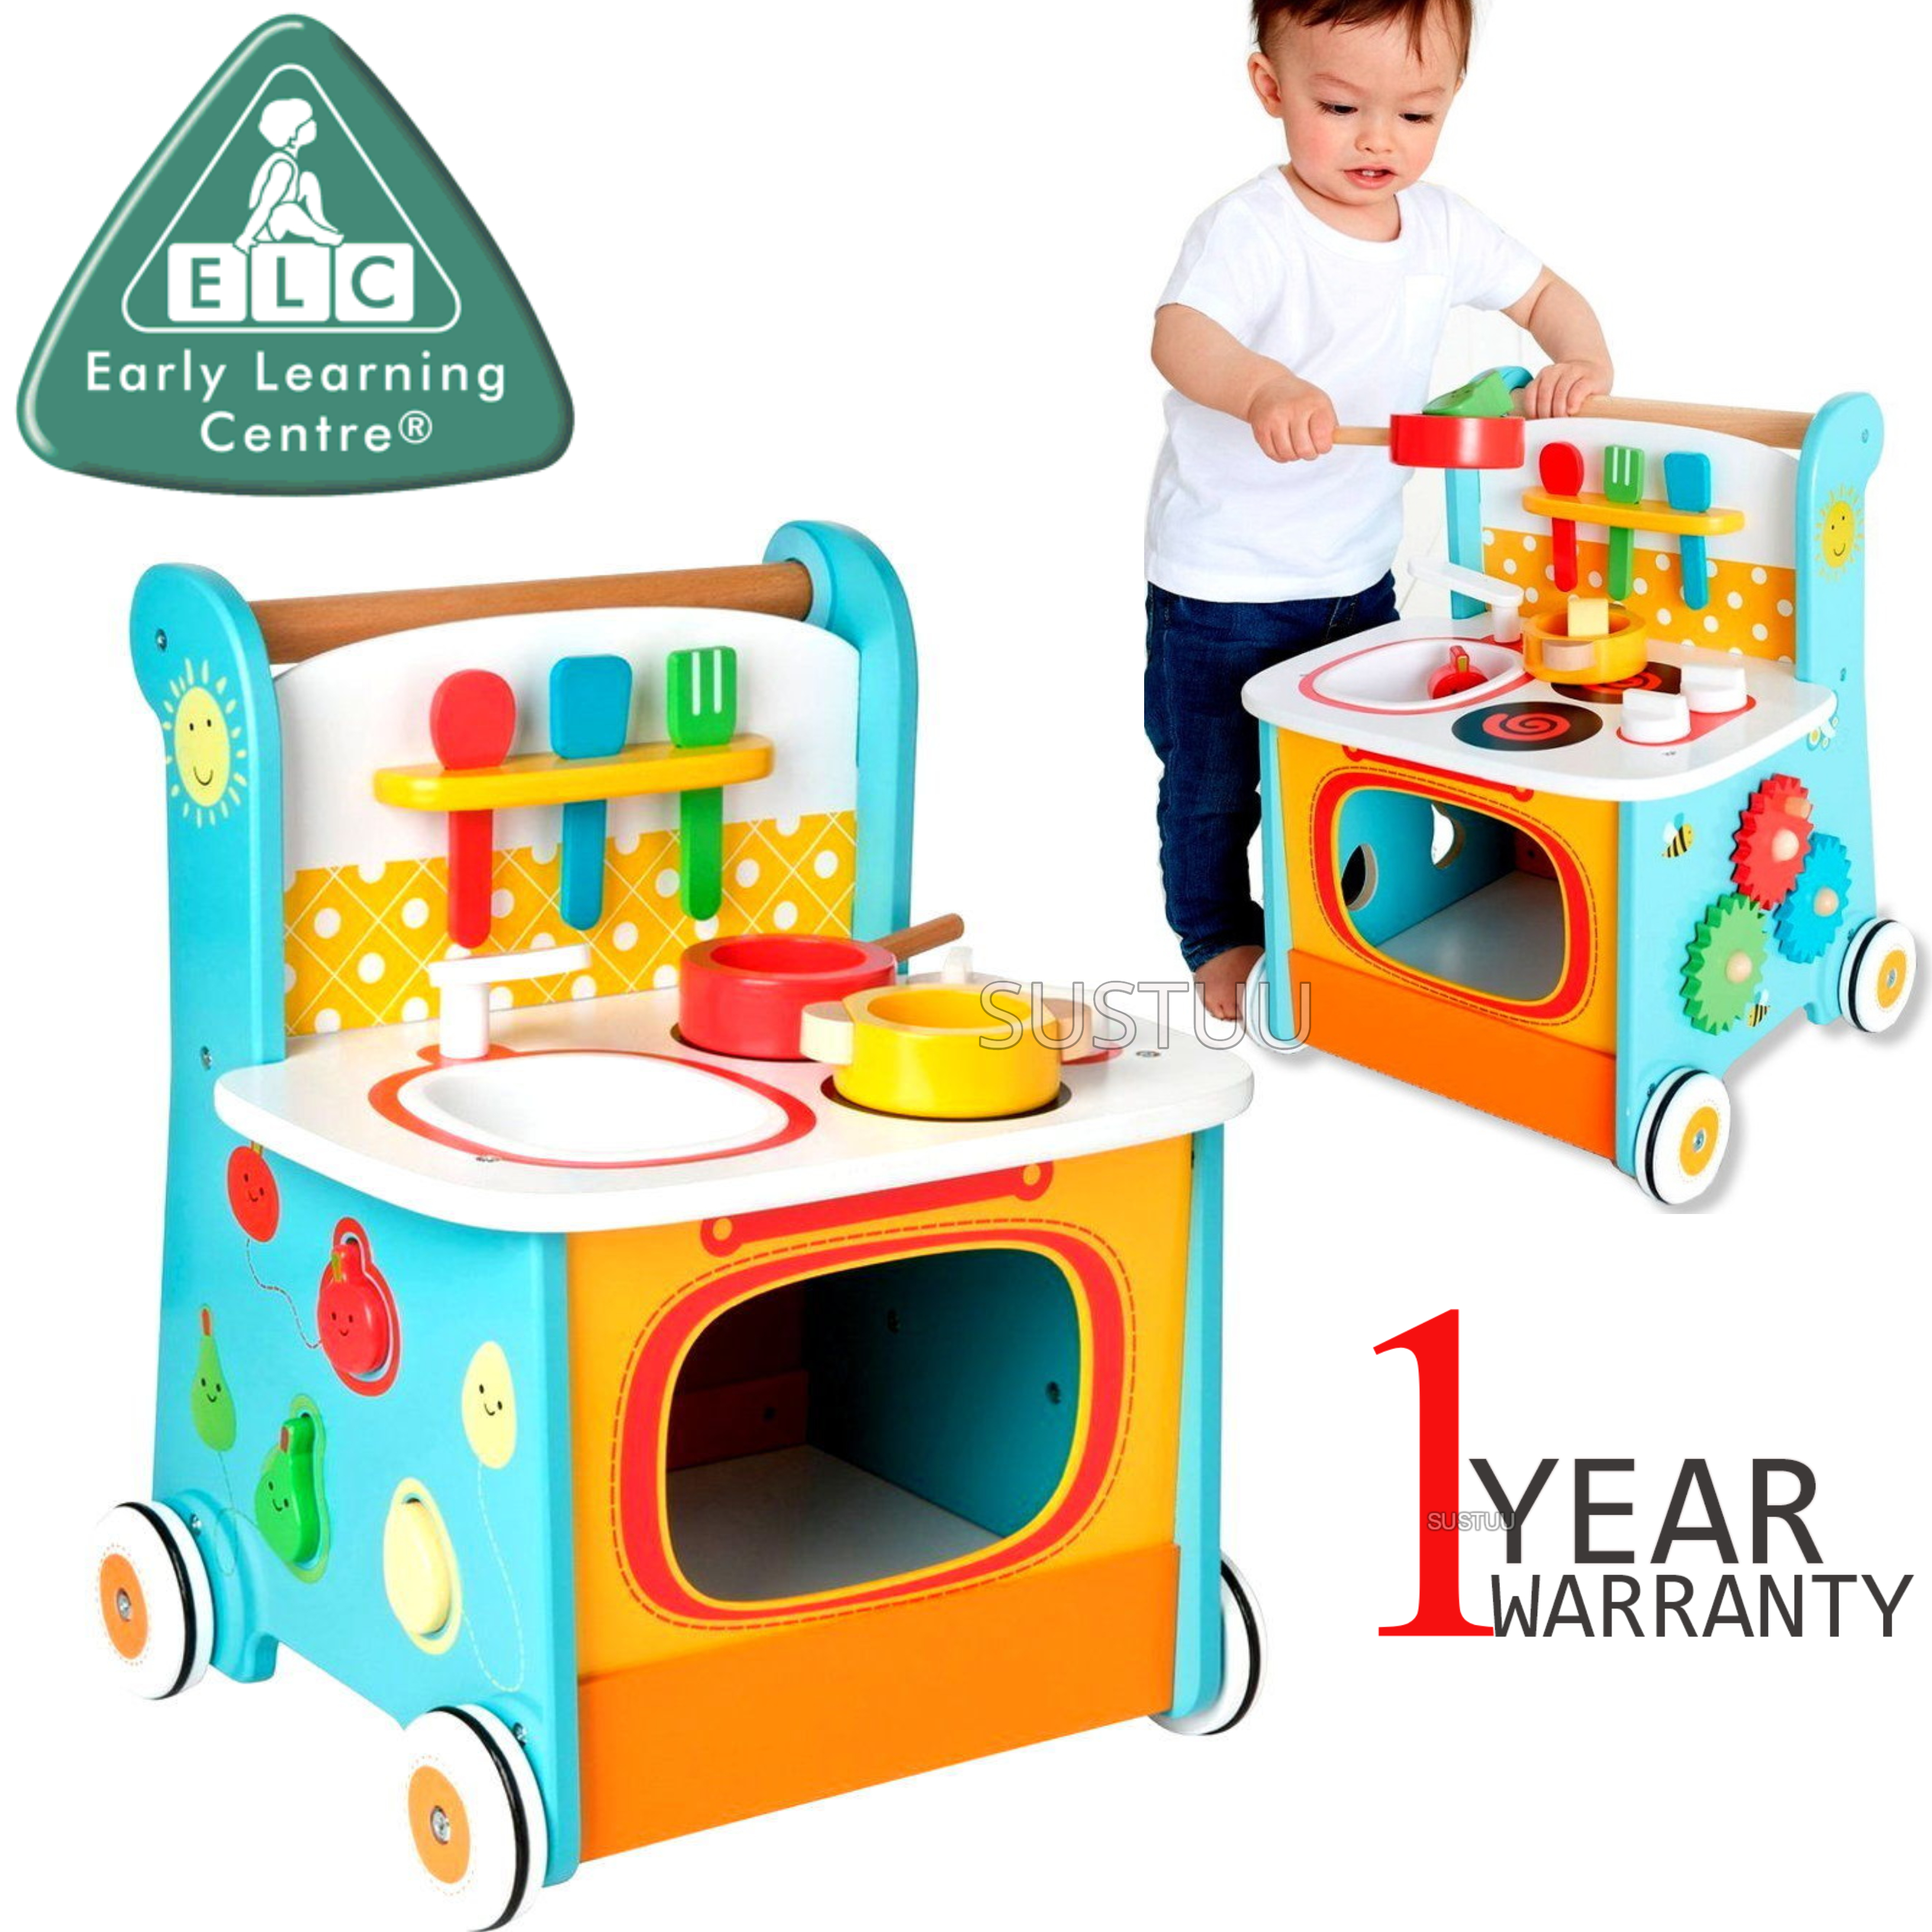 Early Learning Centre Wooden Kitchen Walker | Baby/ Kids Learning Activity Toy | +12m